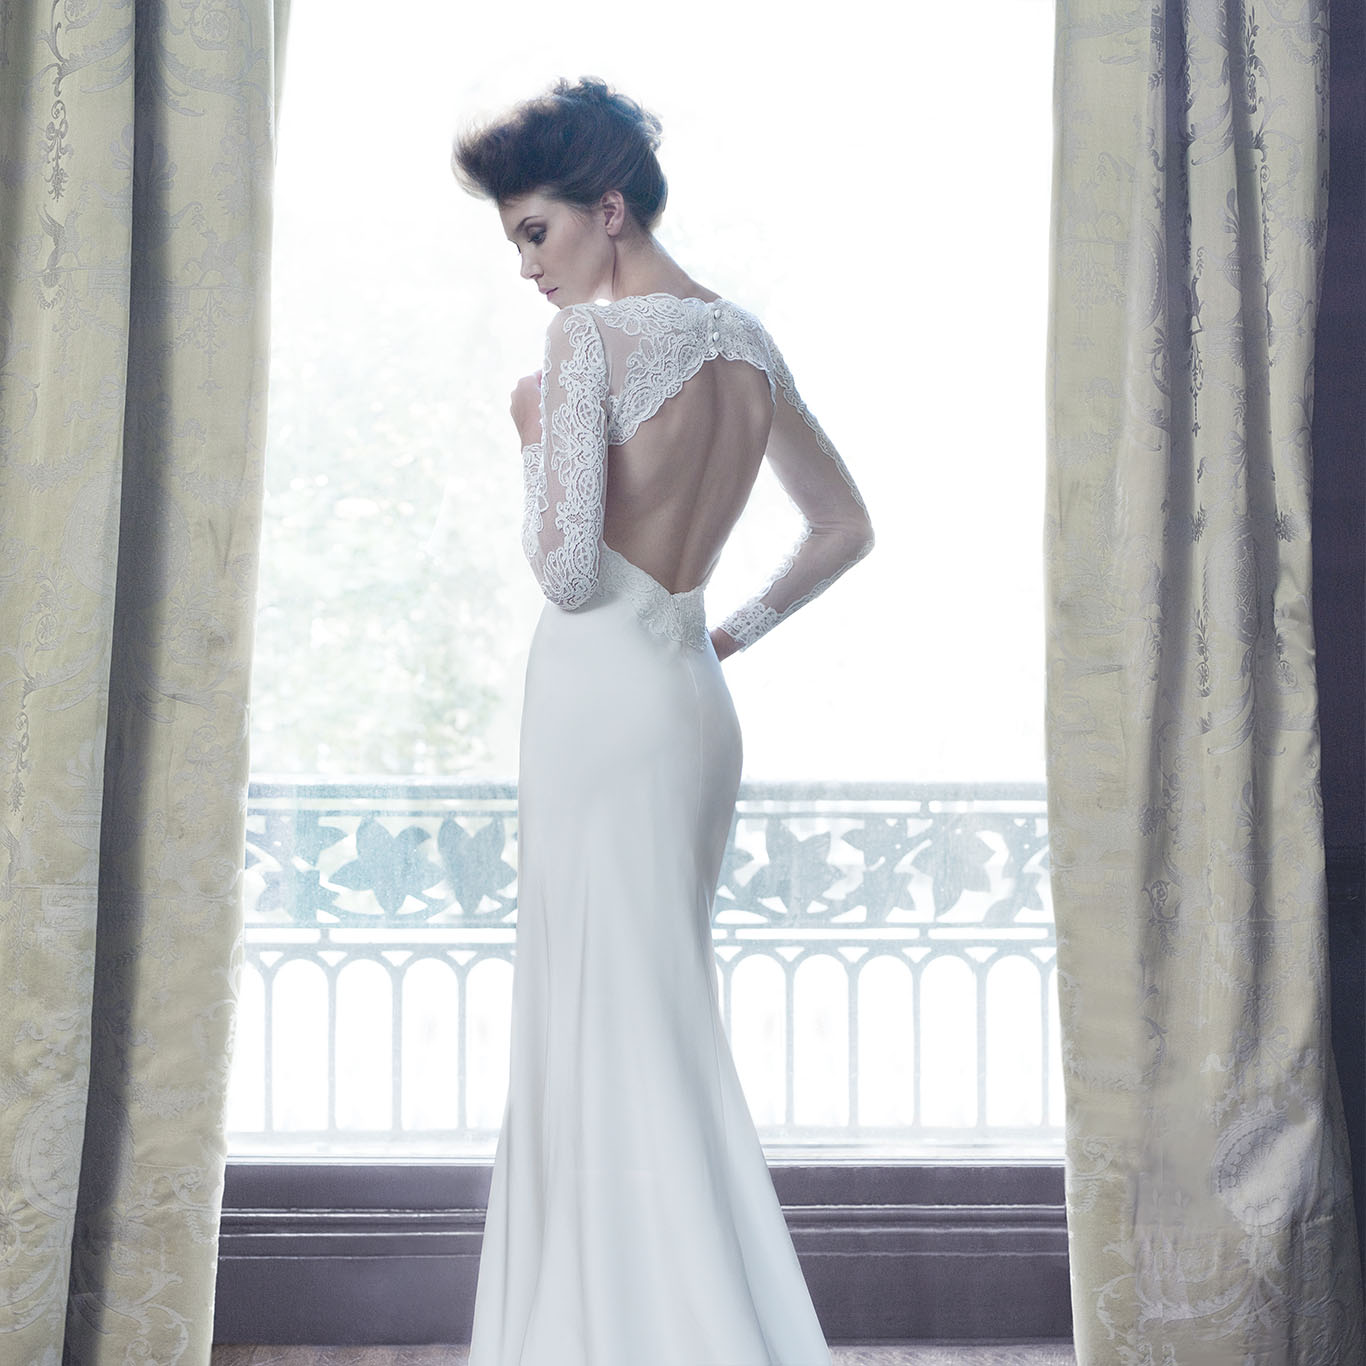 Regency Diamond Collection 2013 by designer Suzanne Neville